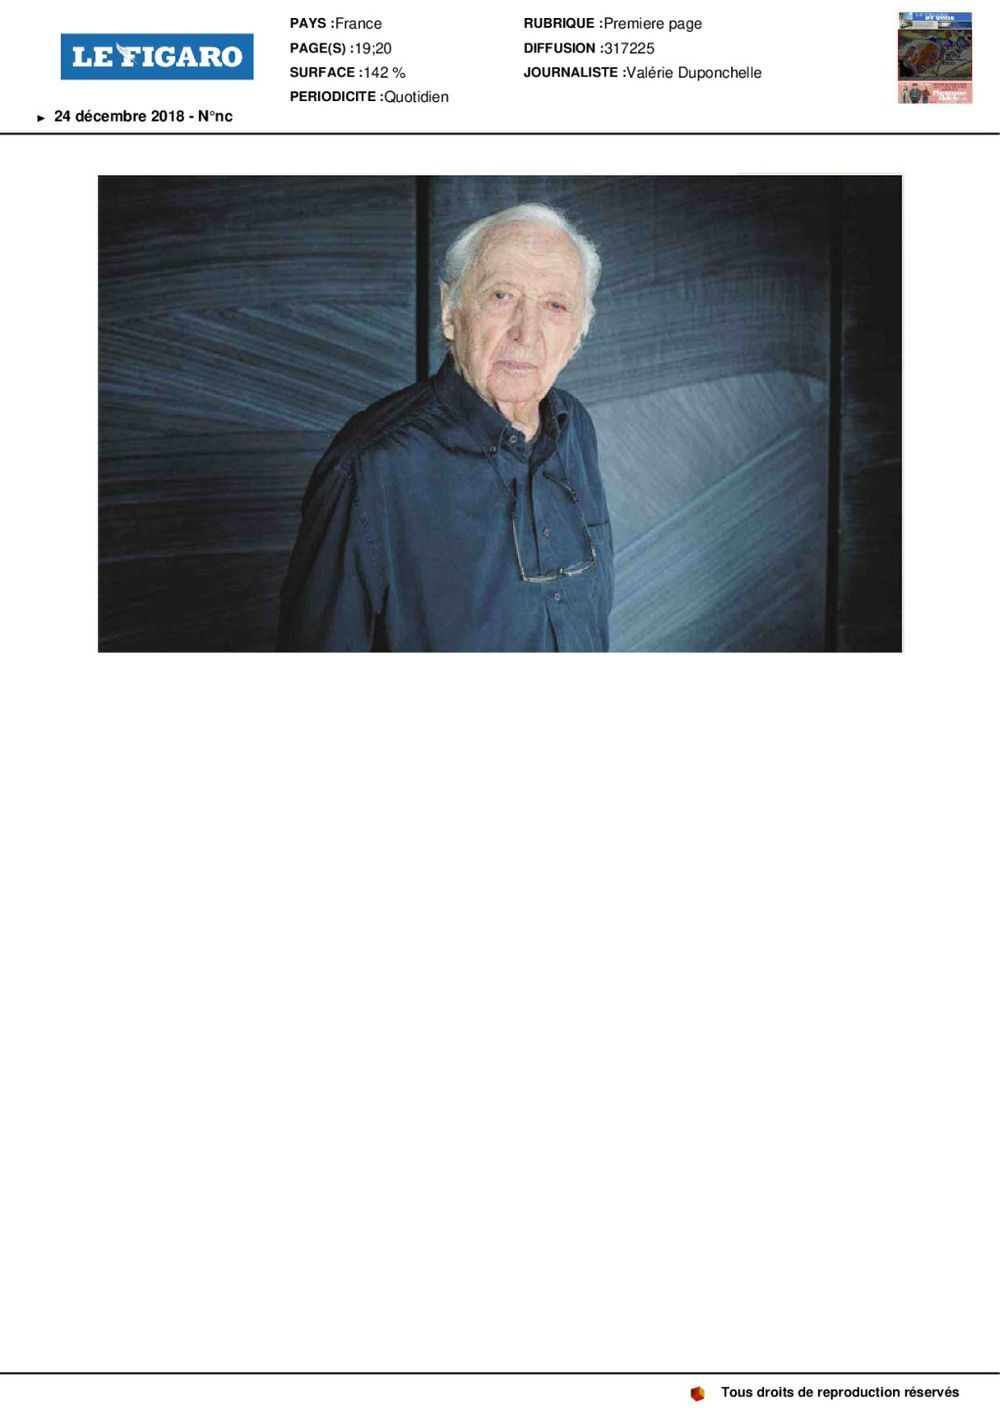 Le Figaro | Pierre SOULAGES